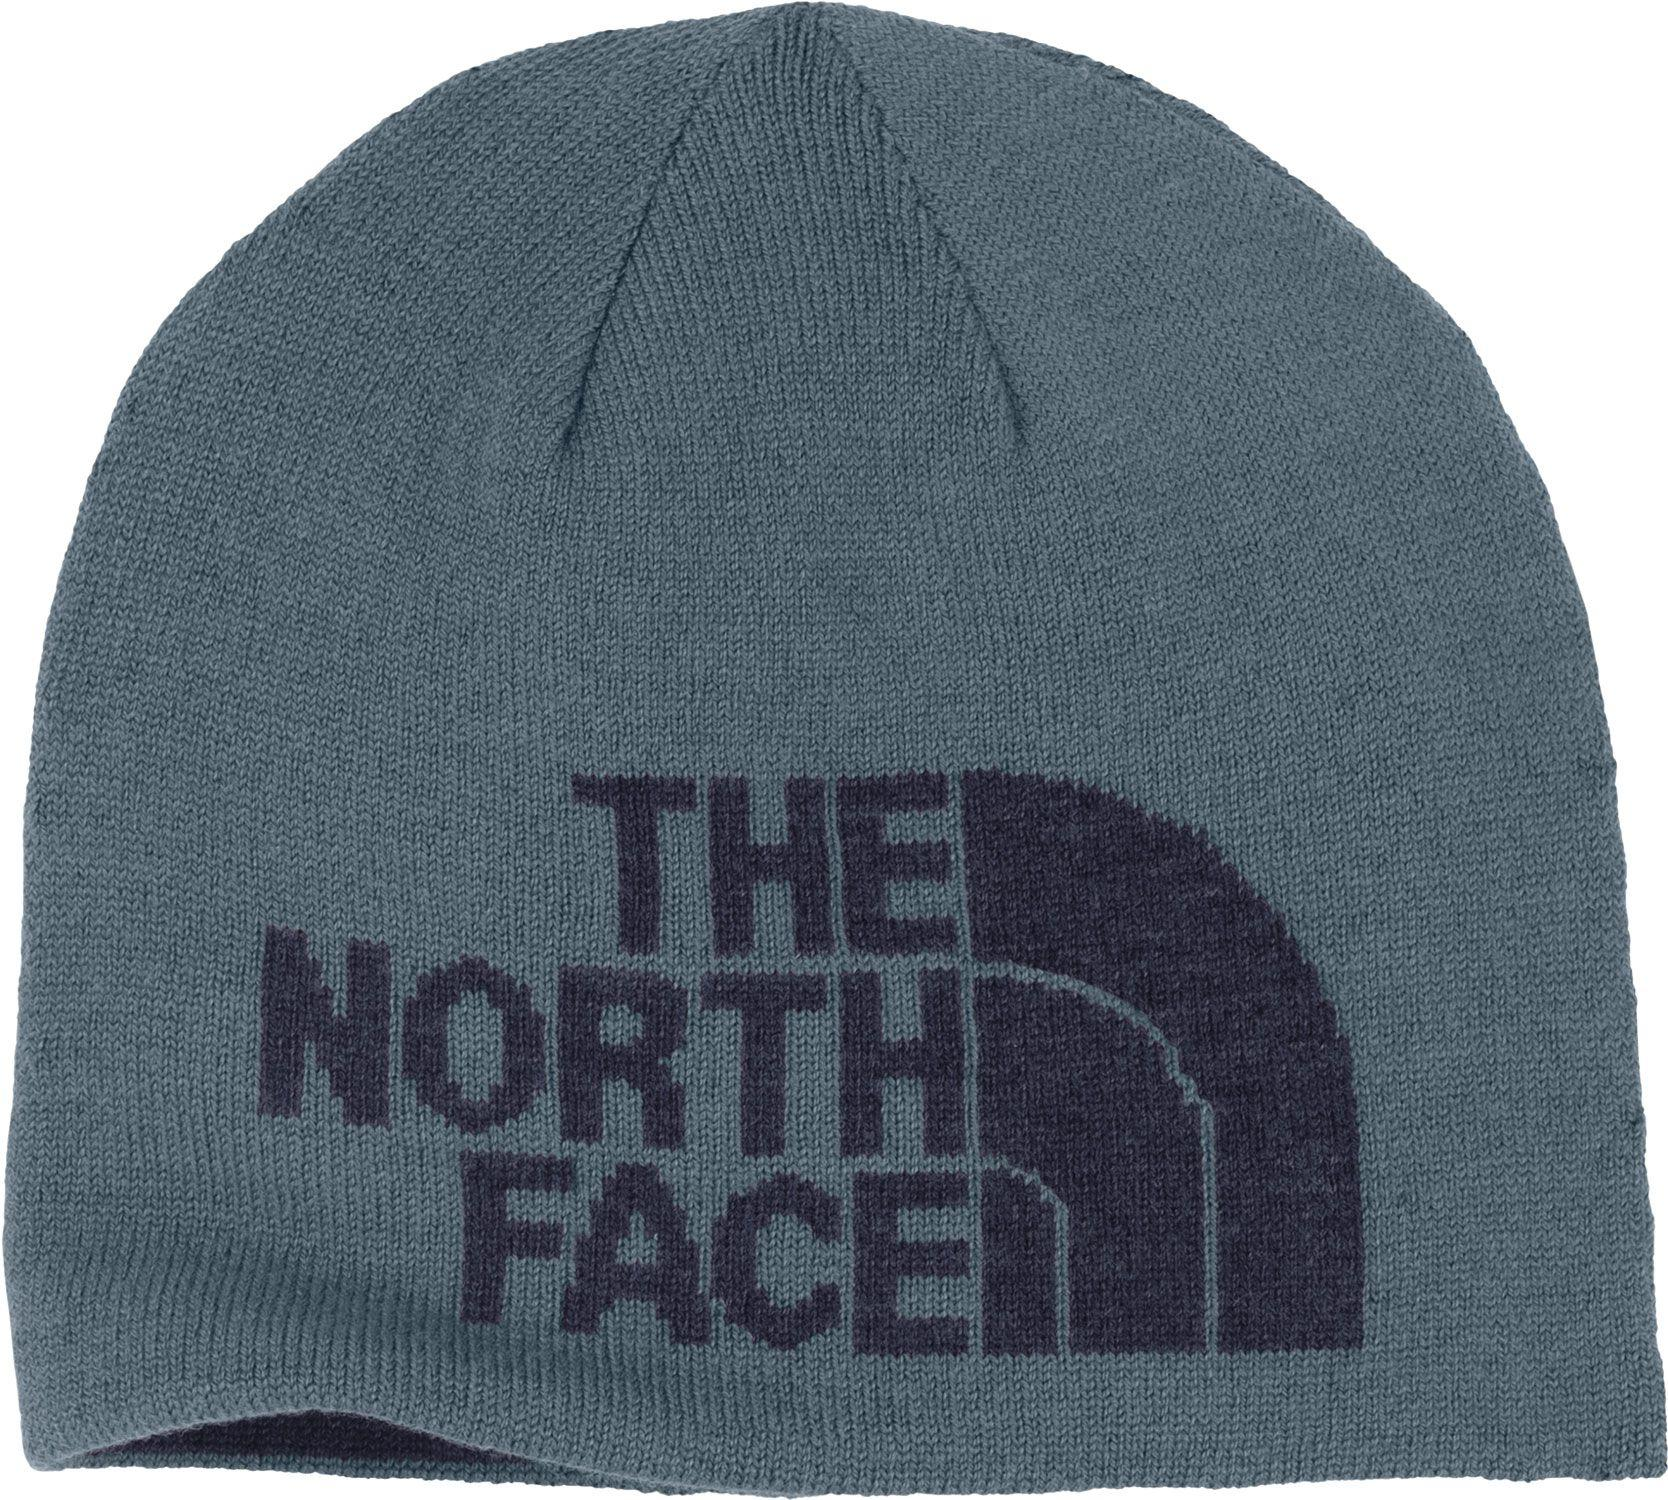 4c4a7b359adf7 Lyst - The North Face Unisex Reversible Highline Beanie in Blue for Men